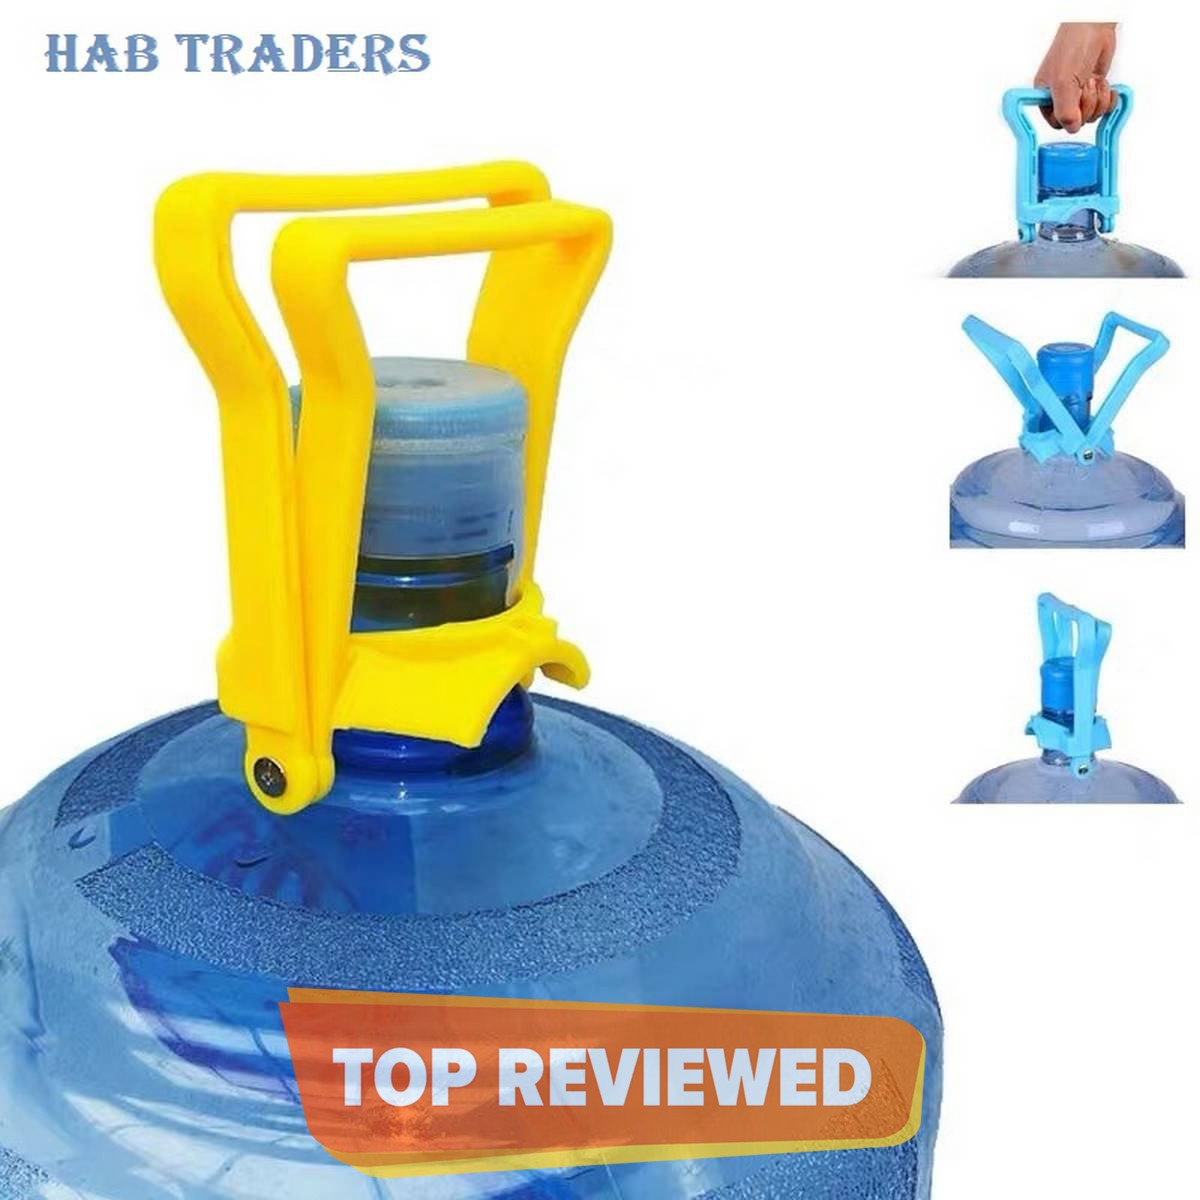 19 ltrs Water Bottle Handle Lifter - Easy Lifting Water Bottle Carrier - Water Bottle handle